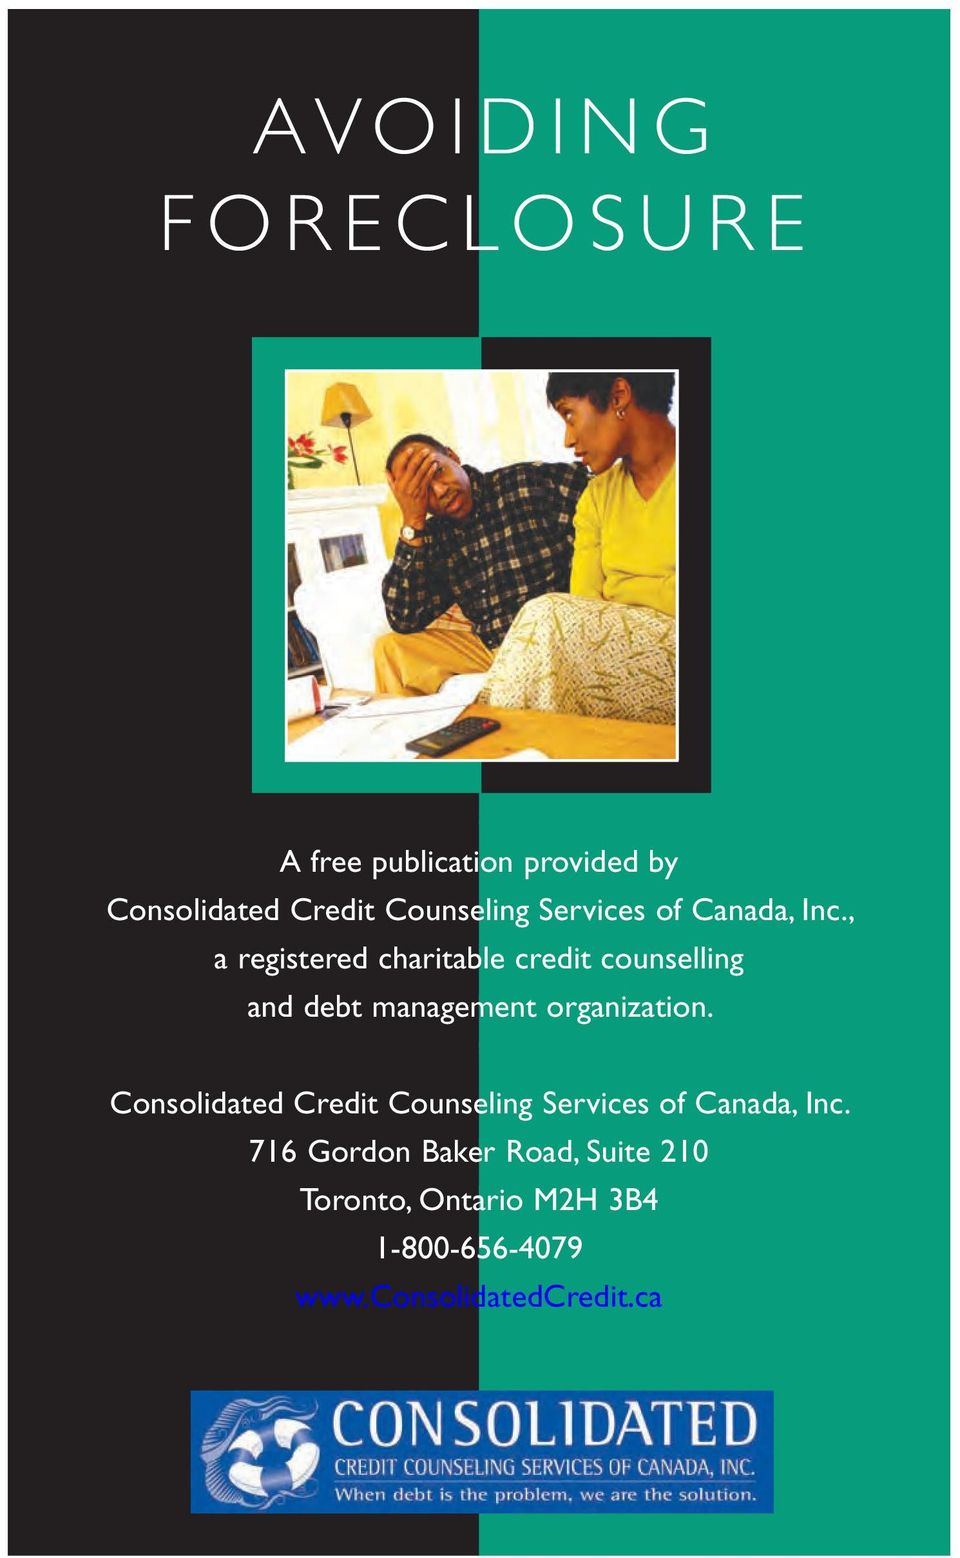 Junior Achievement of South Florida. Consolidated Credit Counseling Services, Inc.